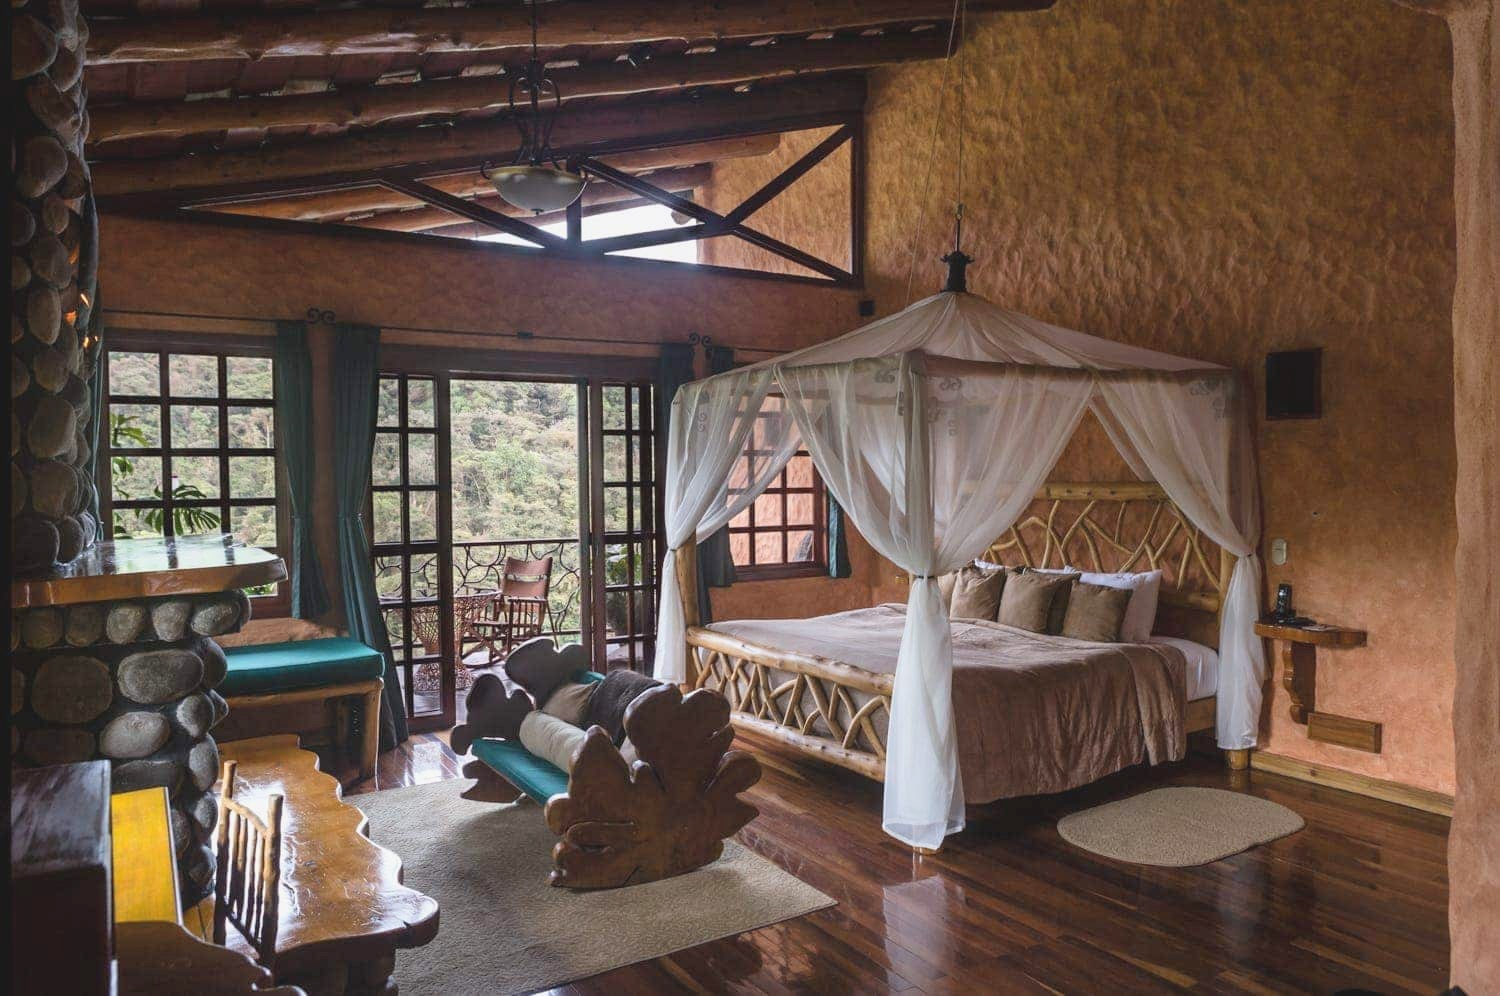 This rustic honeymoon suite at Peace Lodge in Poas overlooks a cloud forest and the Poas Volcano.